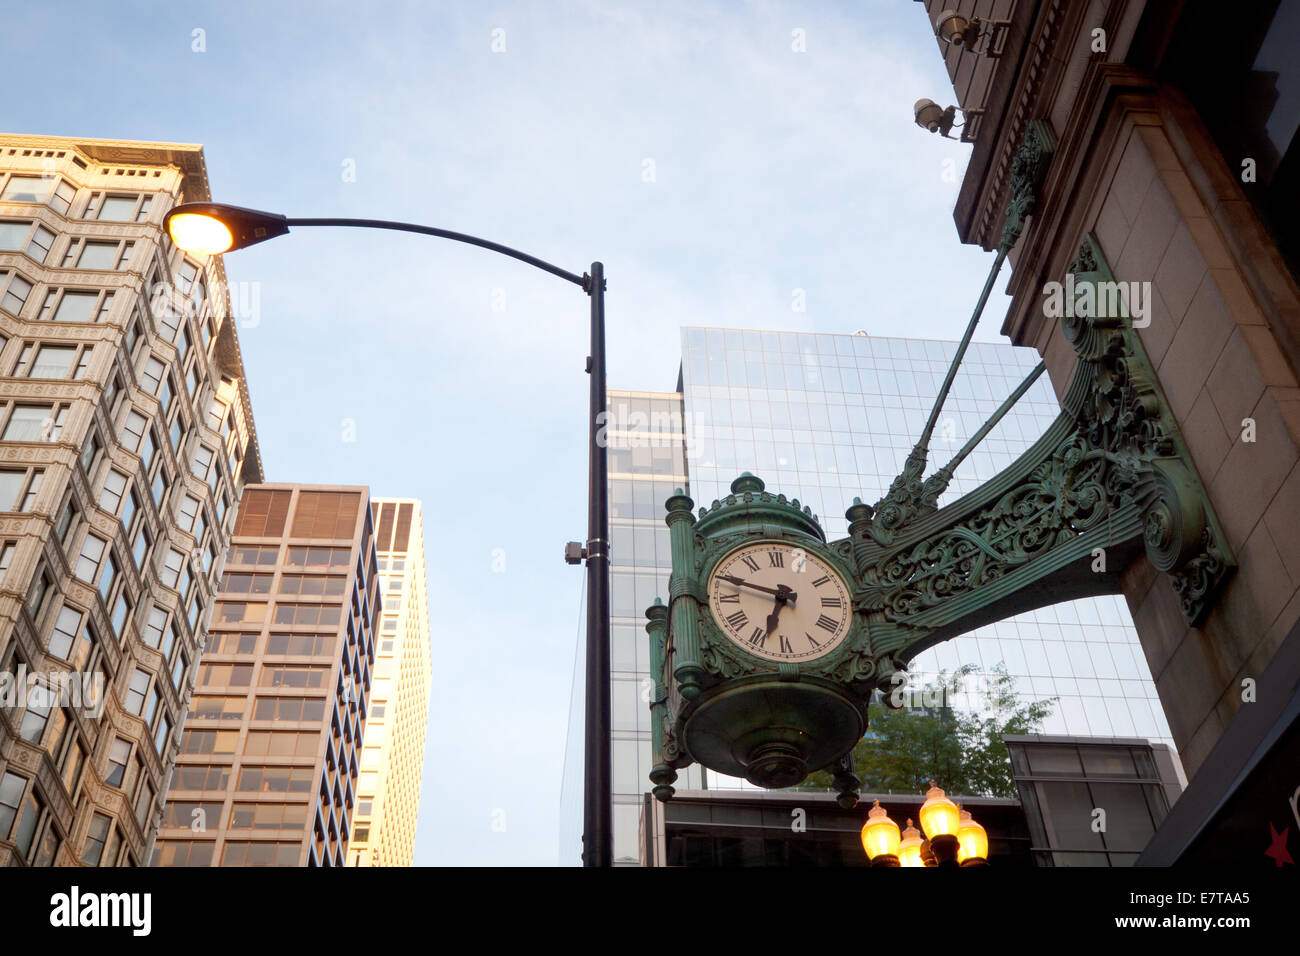 A famous, ornate clock outside of the Marshall Field and Company Building (Macy's at State Street) in the Loop - Stock Image